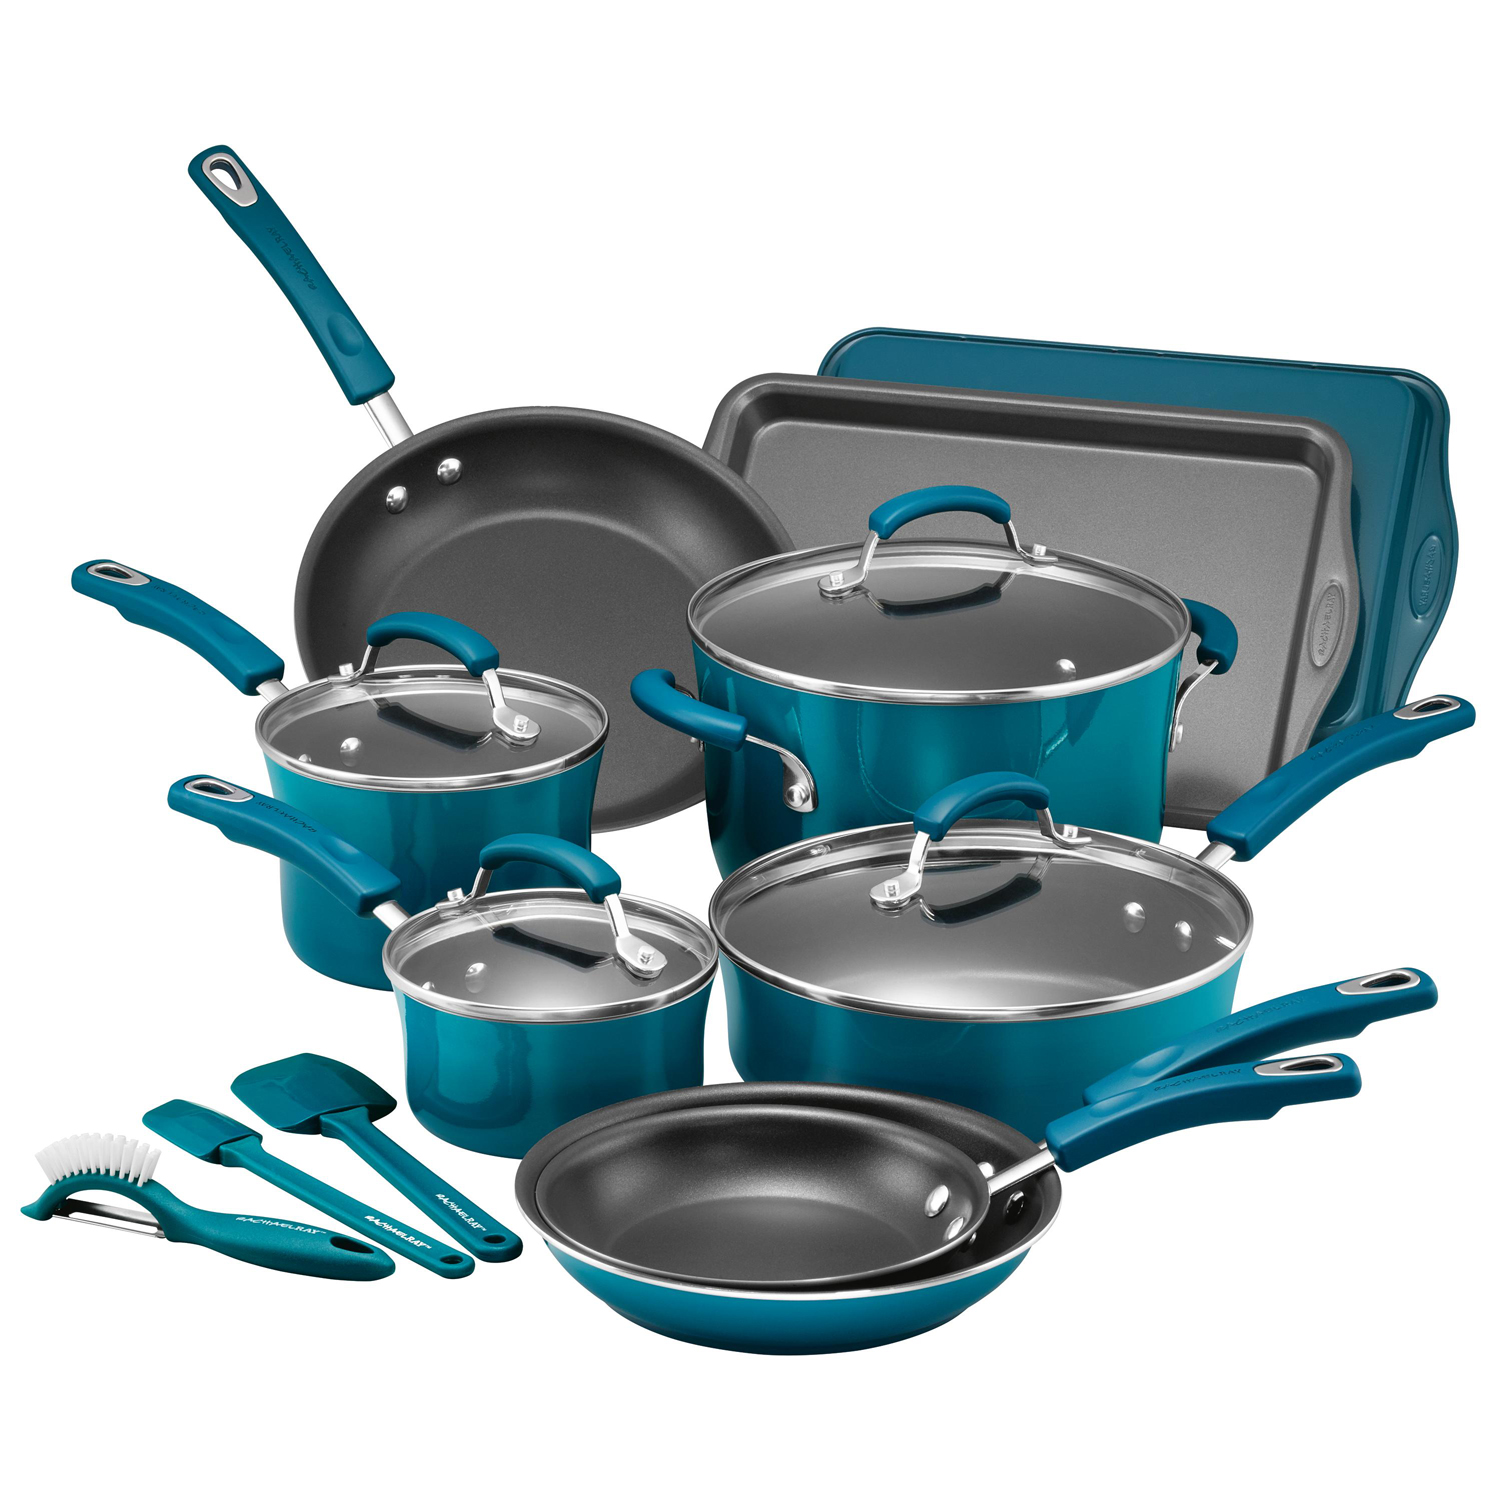 Rachael Ray 16-Piece Hard Enamel Nonstick Cookware Set, Marine Blue